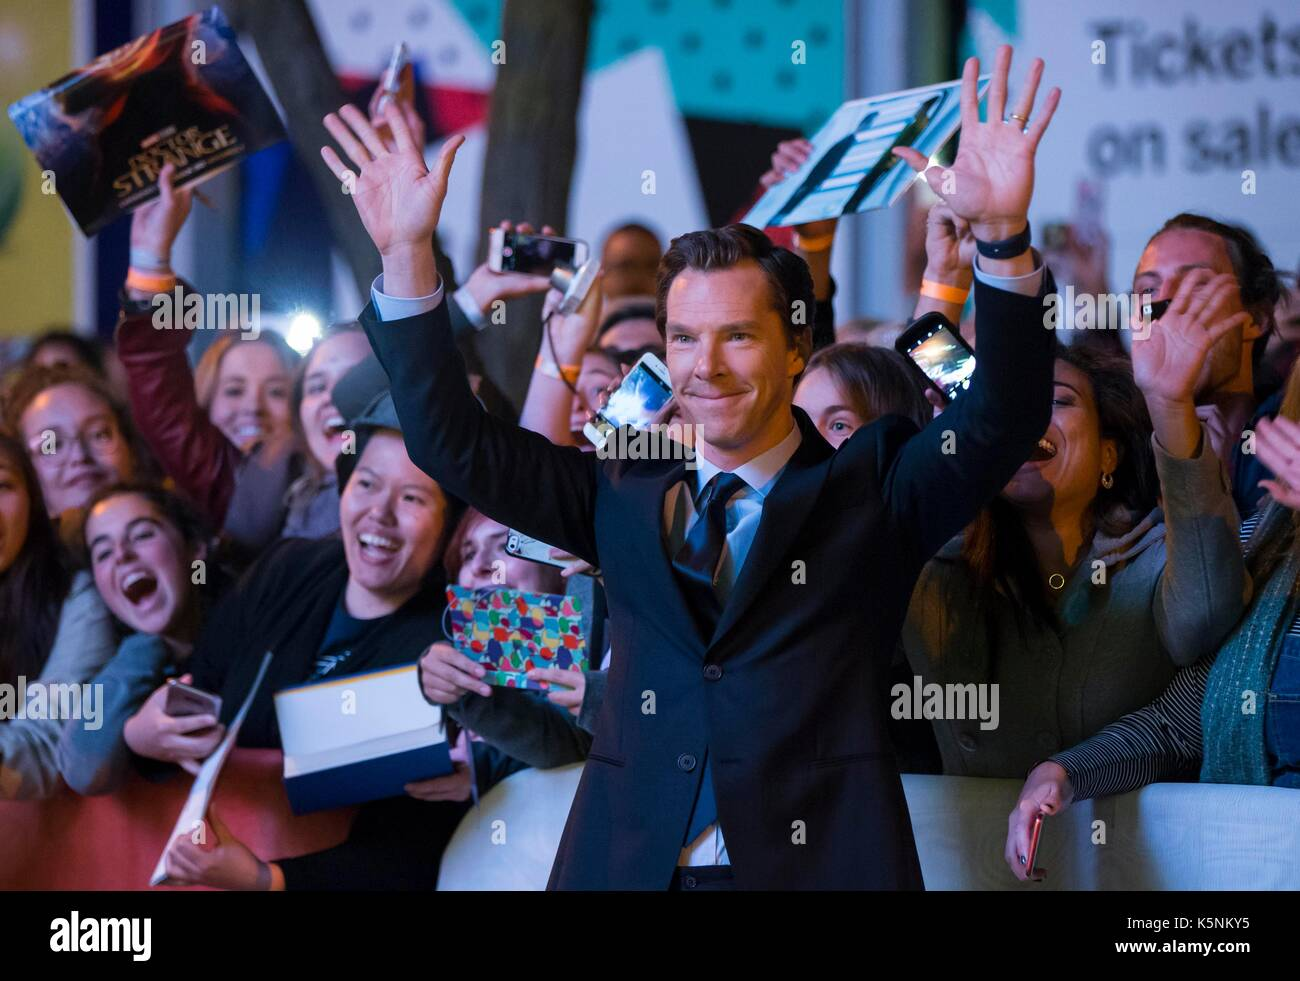 Toronto, Canada. 9th Sep, 2017. Actor Benedict Cumberbatch (front) poses for photos with fans as he attends the - Stock Image